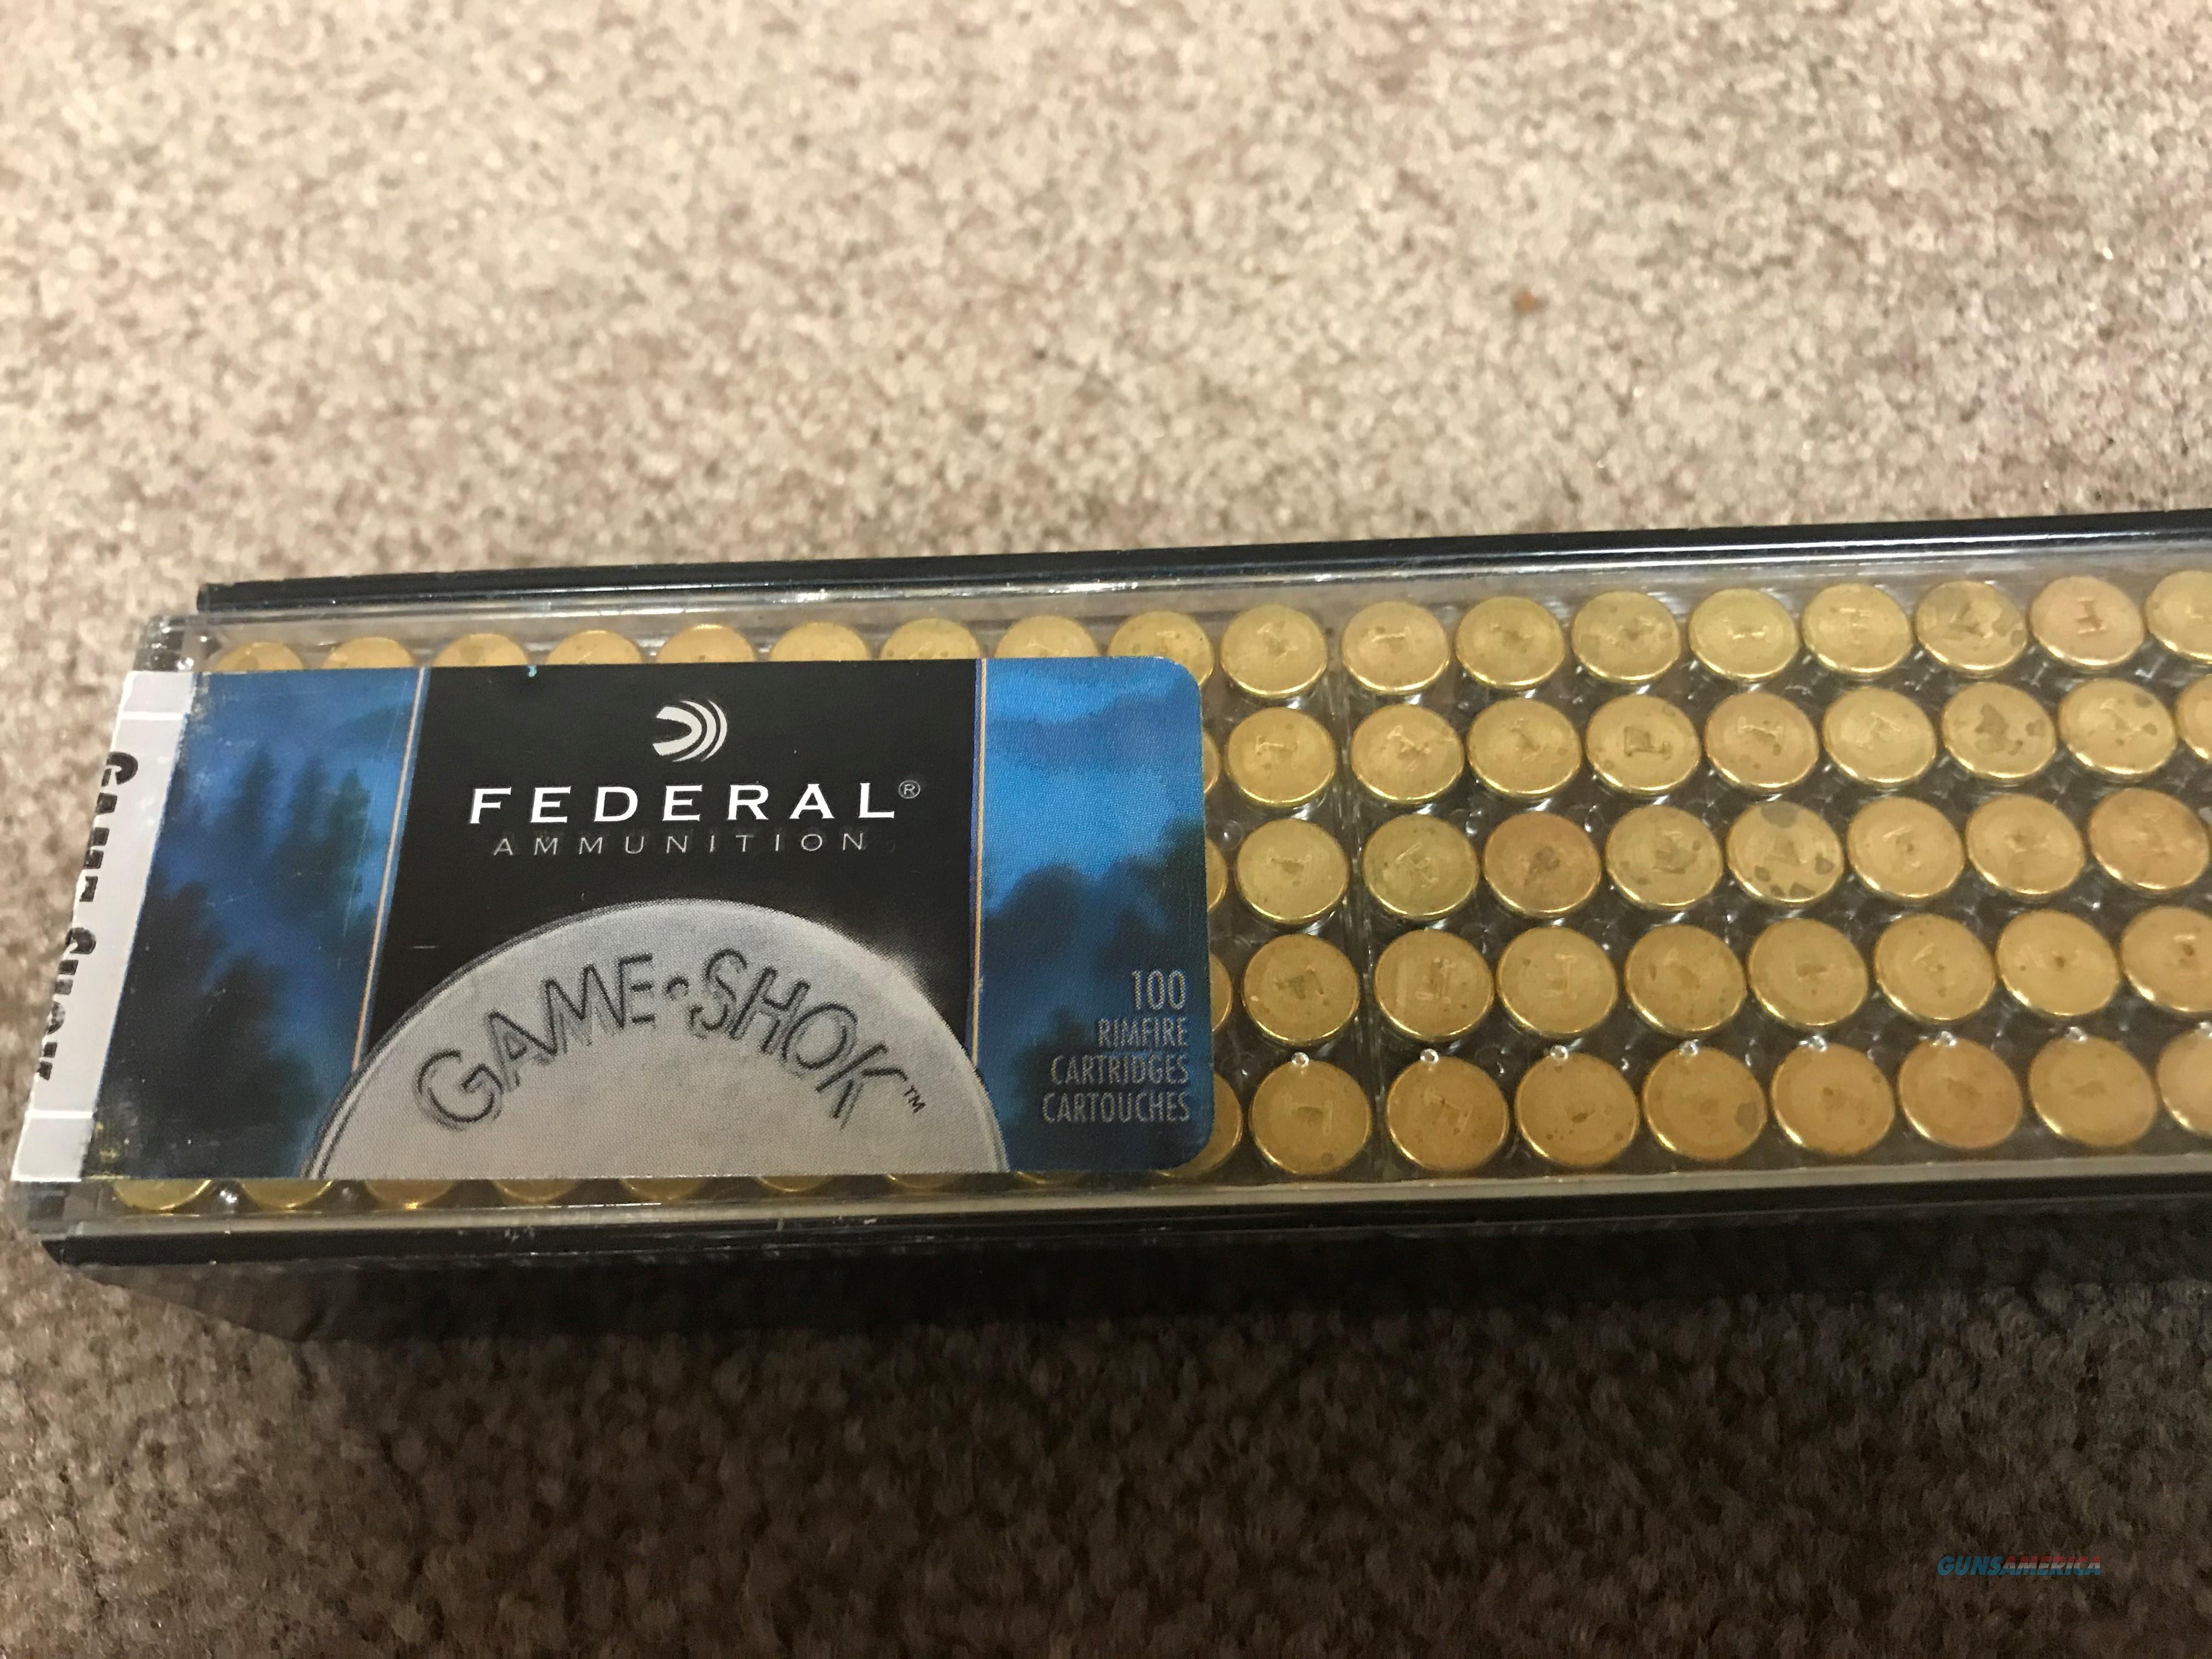 22 LR 22 LONG RIFLE FEDERAL 100 ROUNDS GAME SHOK